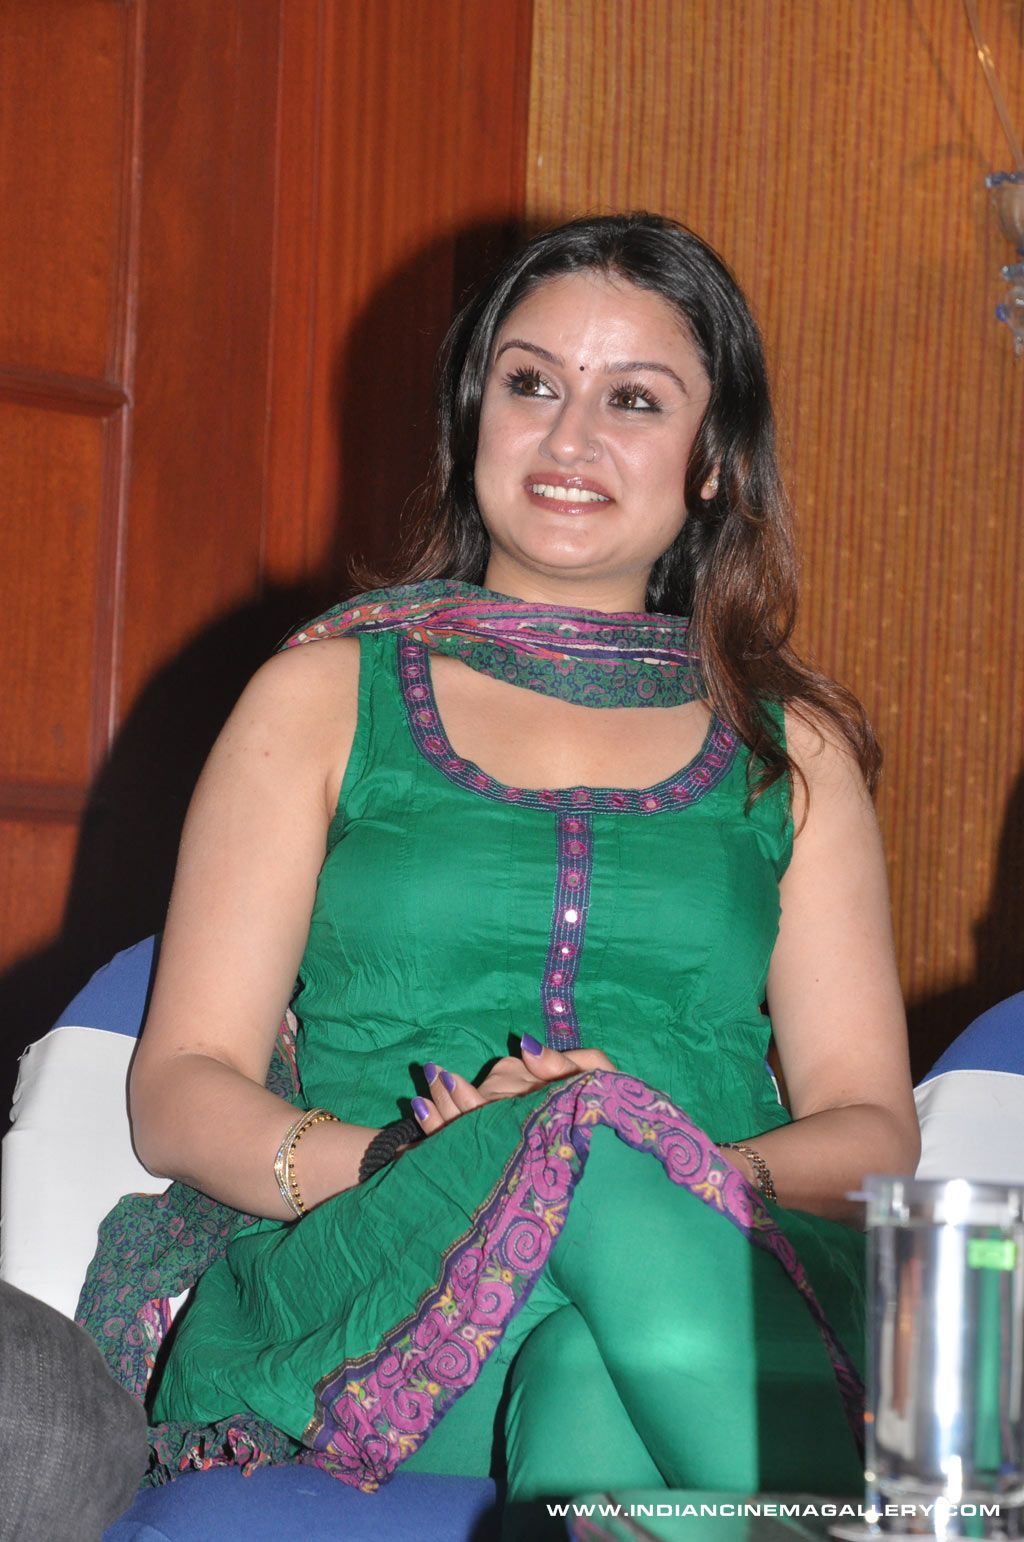 Sonia Agarwal nude photos 2019